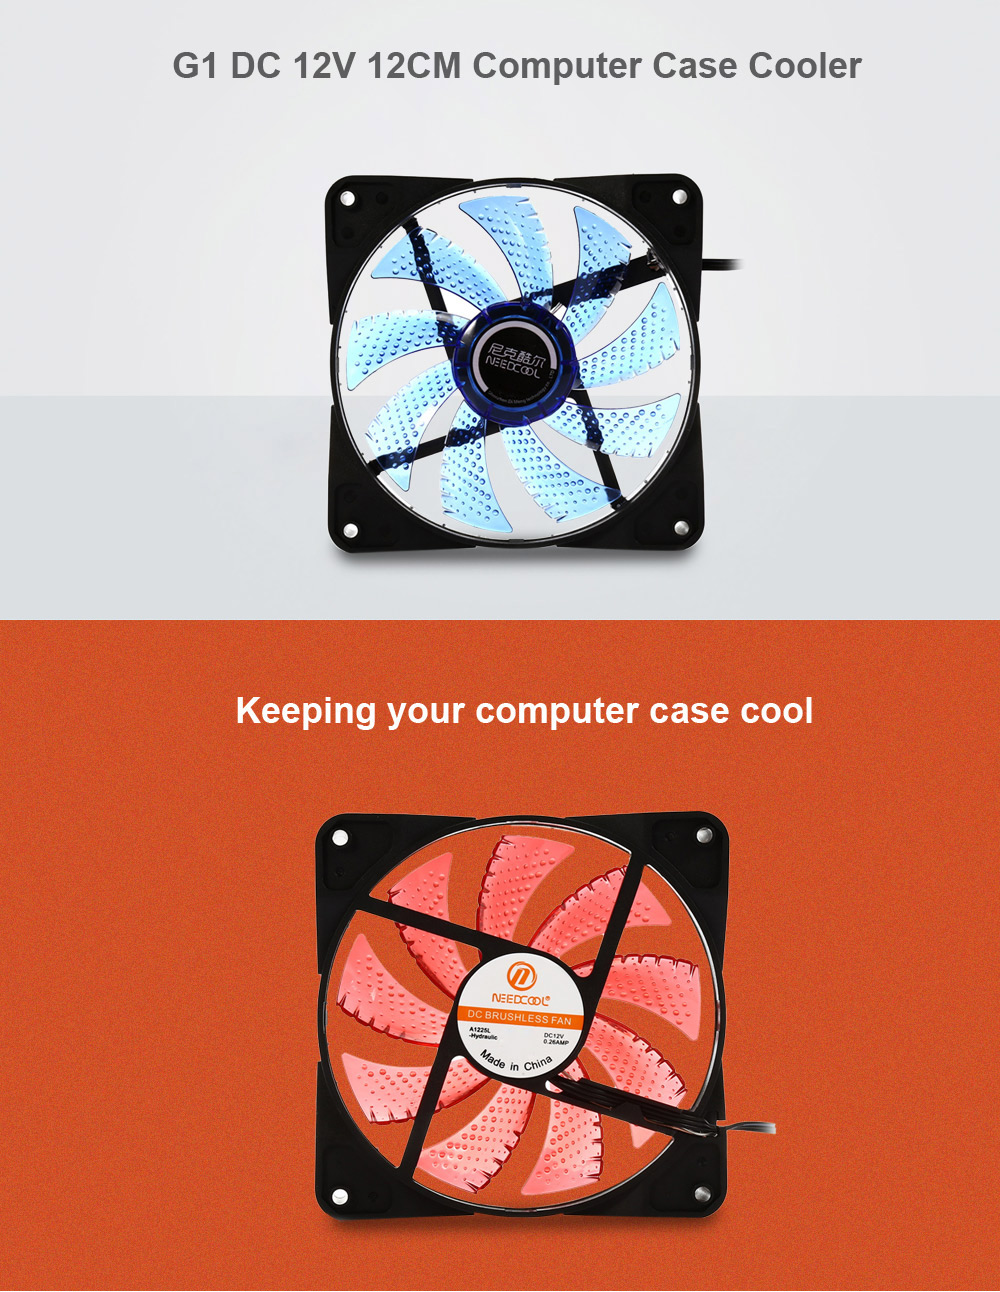 NEEDCOOL G1 DC 12V 12CM Computer Case Cooler with 15 LED Light for PC